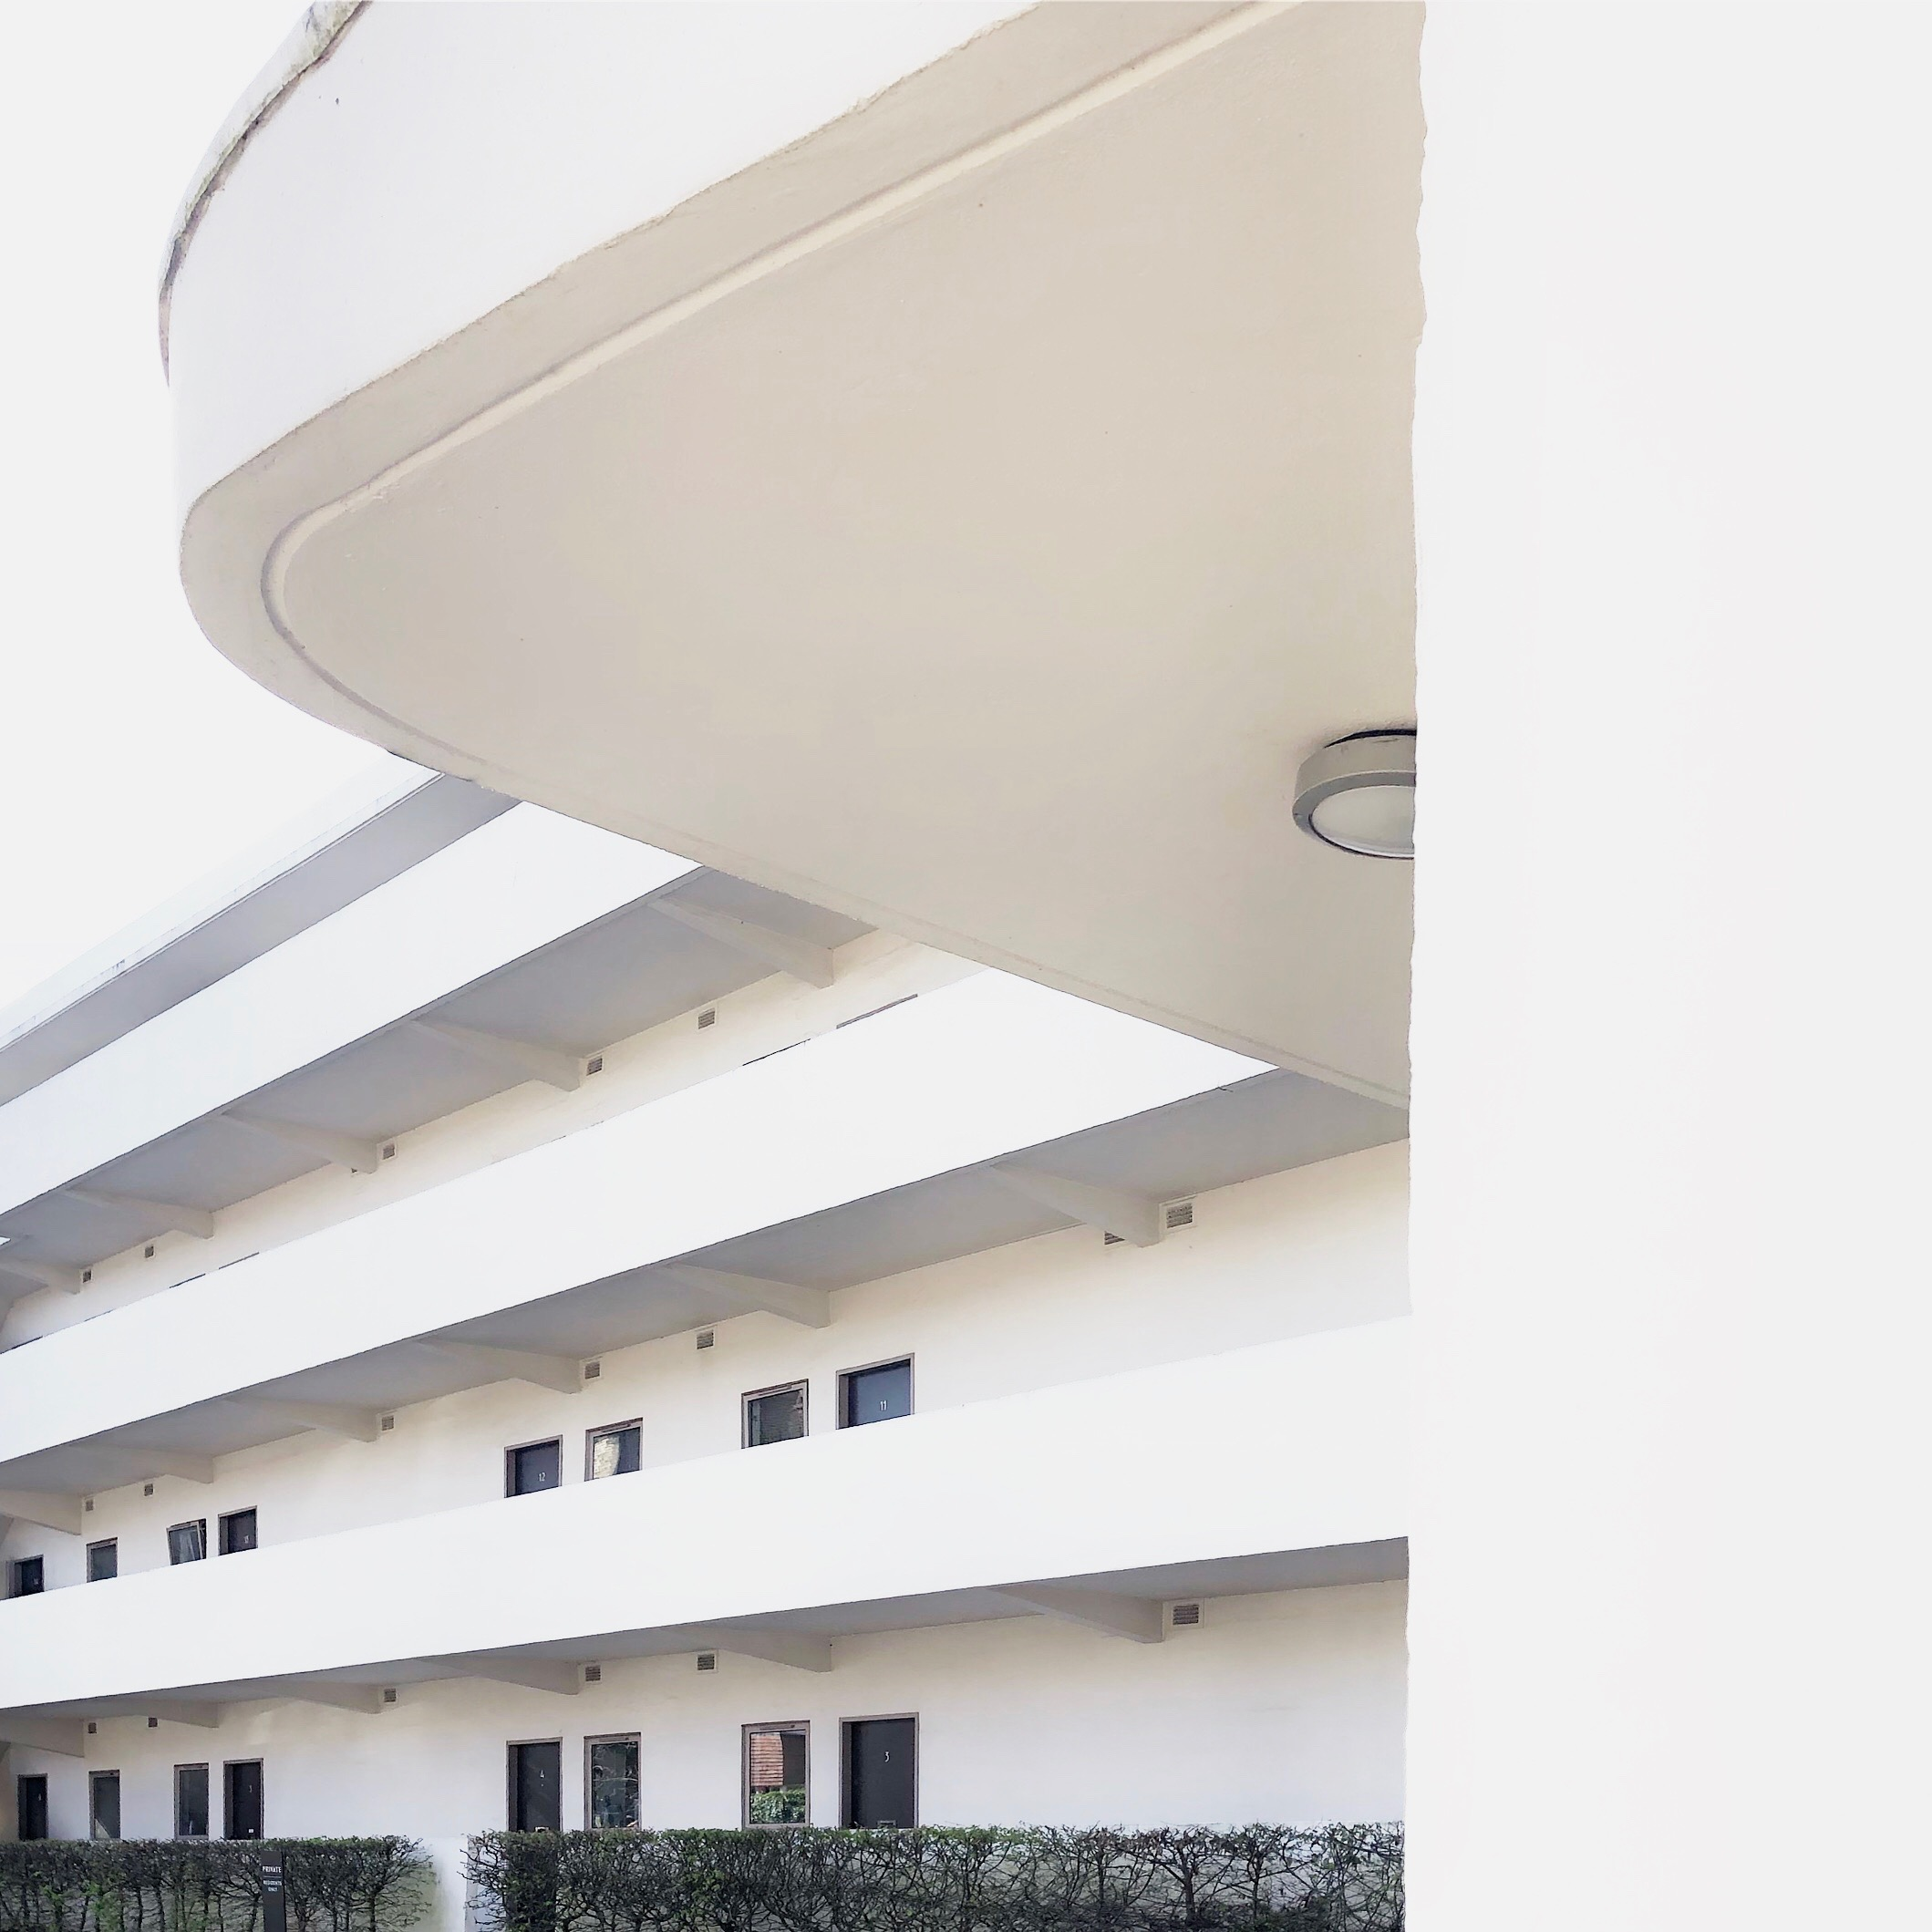 Marvellous Modernist The Isokon Building Owl S House London